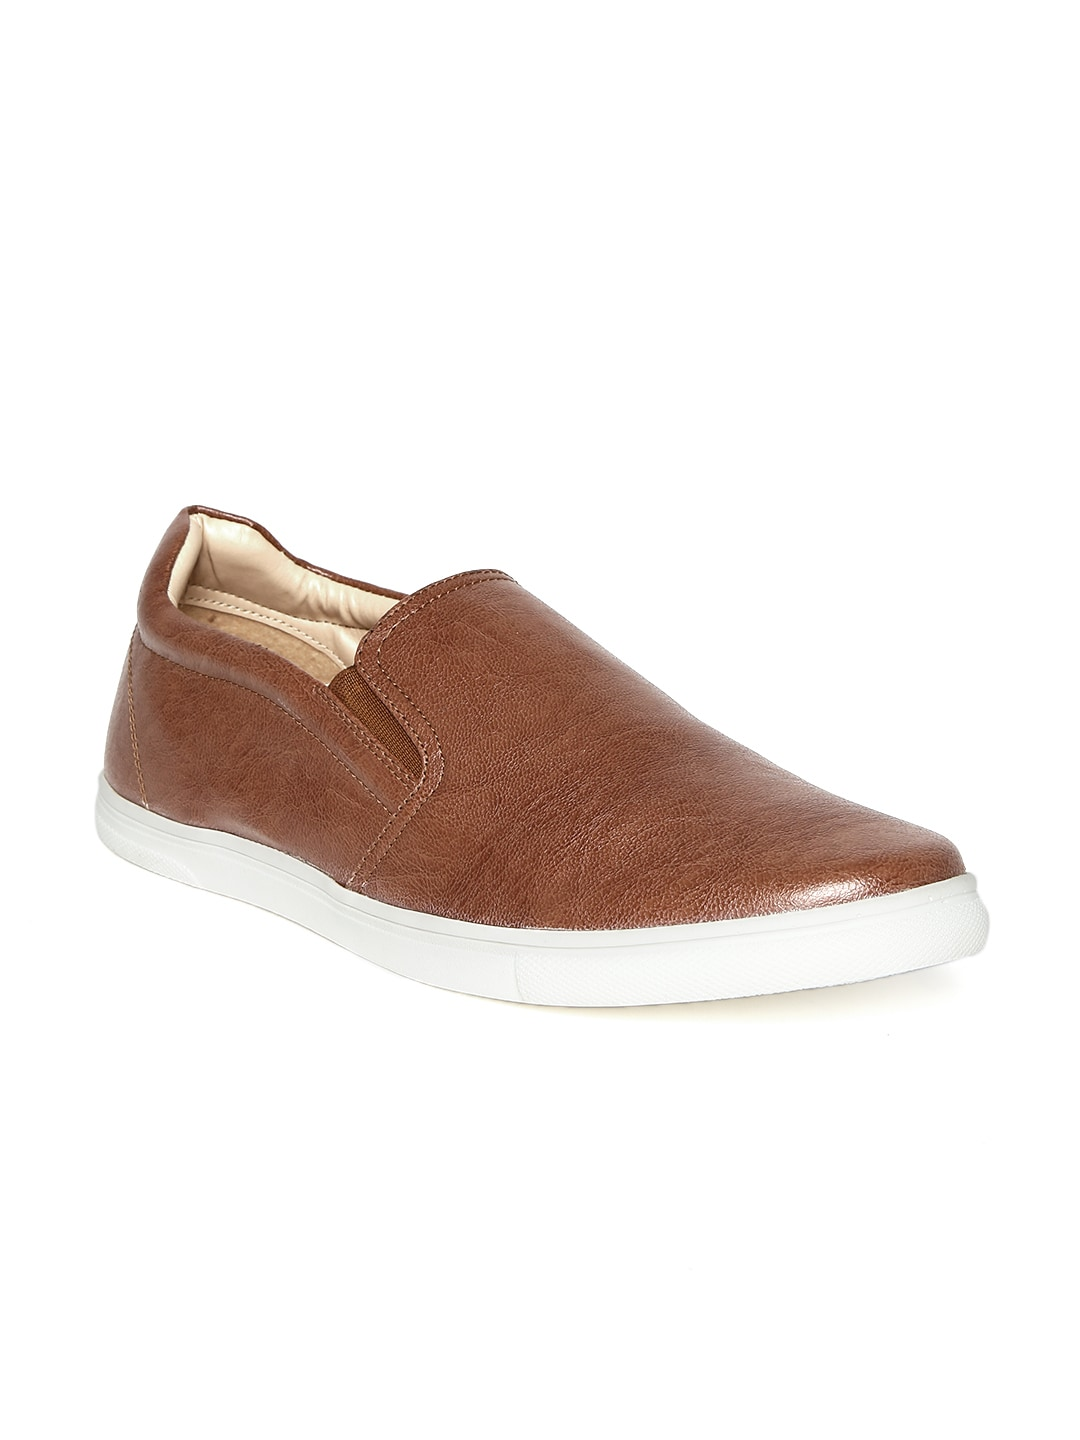 86dec1d2b00 Franco Leone Synthetic Leather Shoes - Buy Franco Leone Synthetic Leather Shoes  online in India